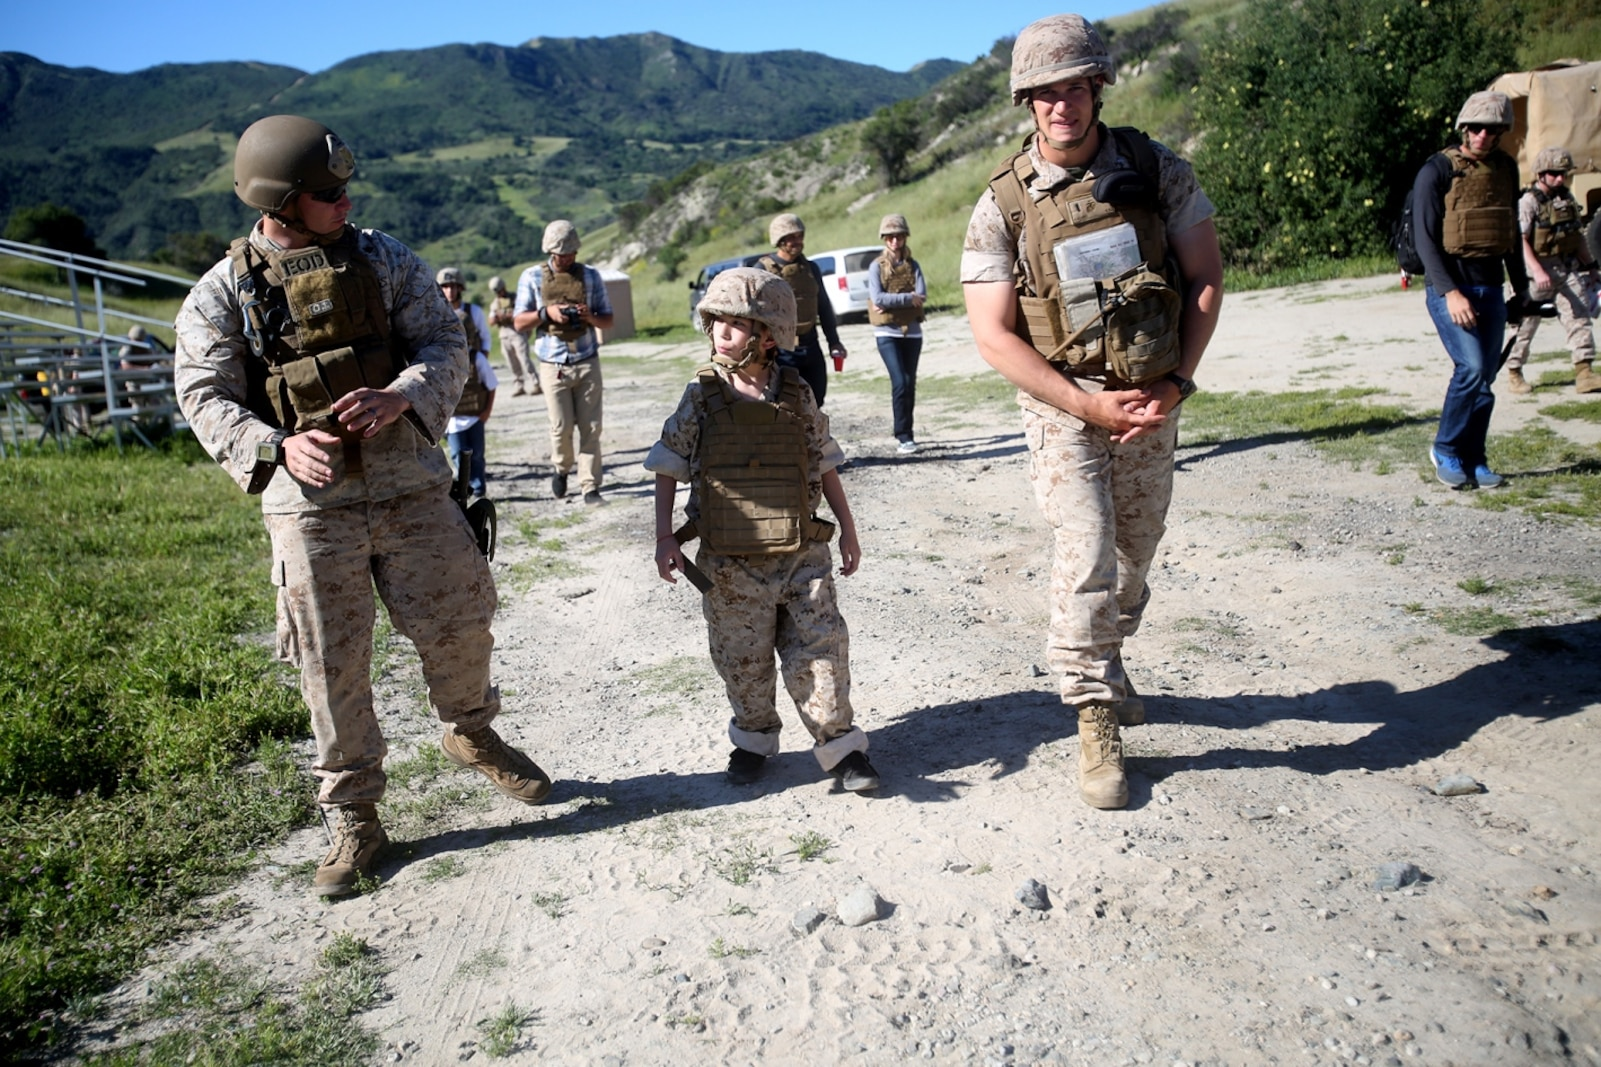 Nathan Aldaco, a 12 year-old boy with hypoplastic left heart syndrome, walks with Marines to a demolition site during a Make-A-Wish event supported by 7th Engineer Support Battalion, 1st Marine Logistics Group, aboard Camp Pendleton, Calif., March 24, 2016. Marines with 7th ESB and Explosive Ordnance Disposal helped to make Nathan's wish of becoming a Marine come true by demonstrating the capabilities of their EOD robots and detonating TNT, C4, dynamite and blasting caps, while the heavy equipment operators gave him the opportunity to ride the D7 dozer and the excavator, in which he dug a pit, built a berm, and broke several large tree trunks.  (U.S. Marine Corps photo by Sgt. Laura Gauna/released)